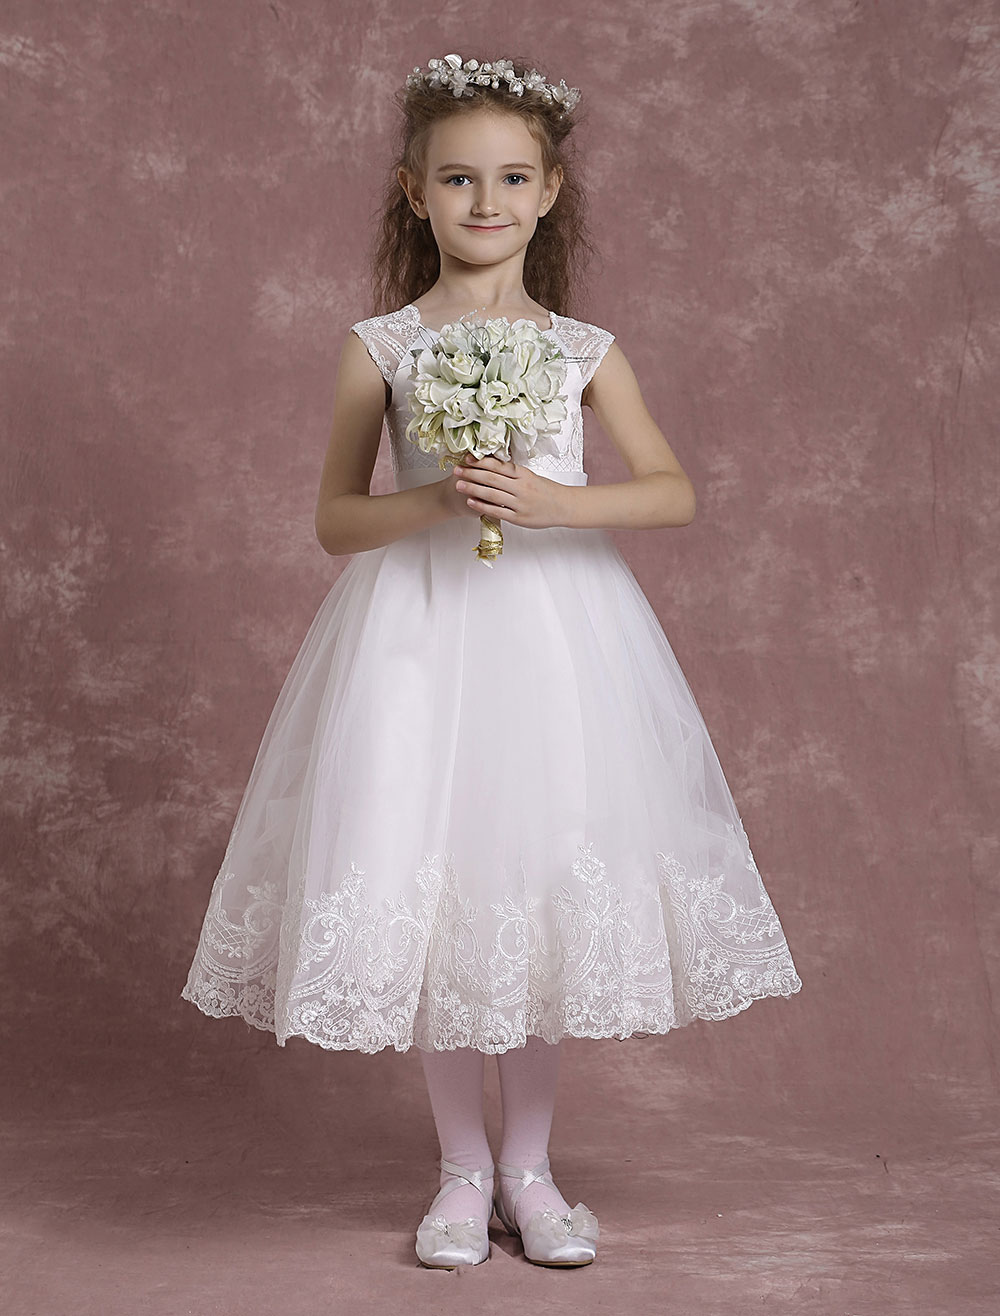 Buy Ivory Flower Girl Dresses A Line Tulle Pageant Dresses Toddler's Lace Tea Length Formal Dresses for $86.39 in Milanoo store